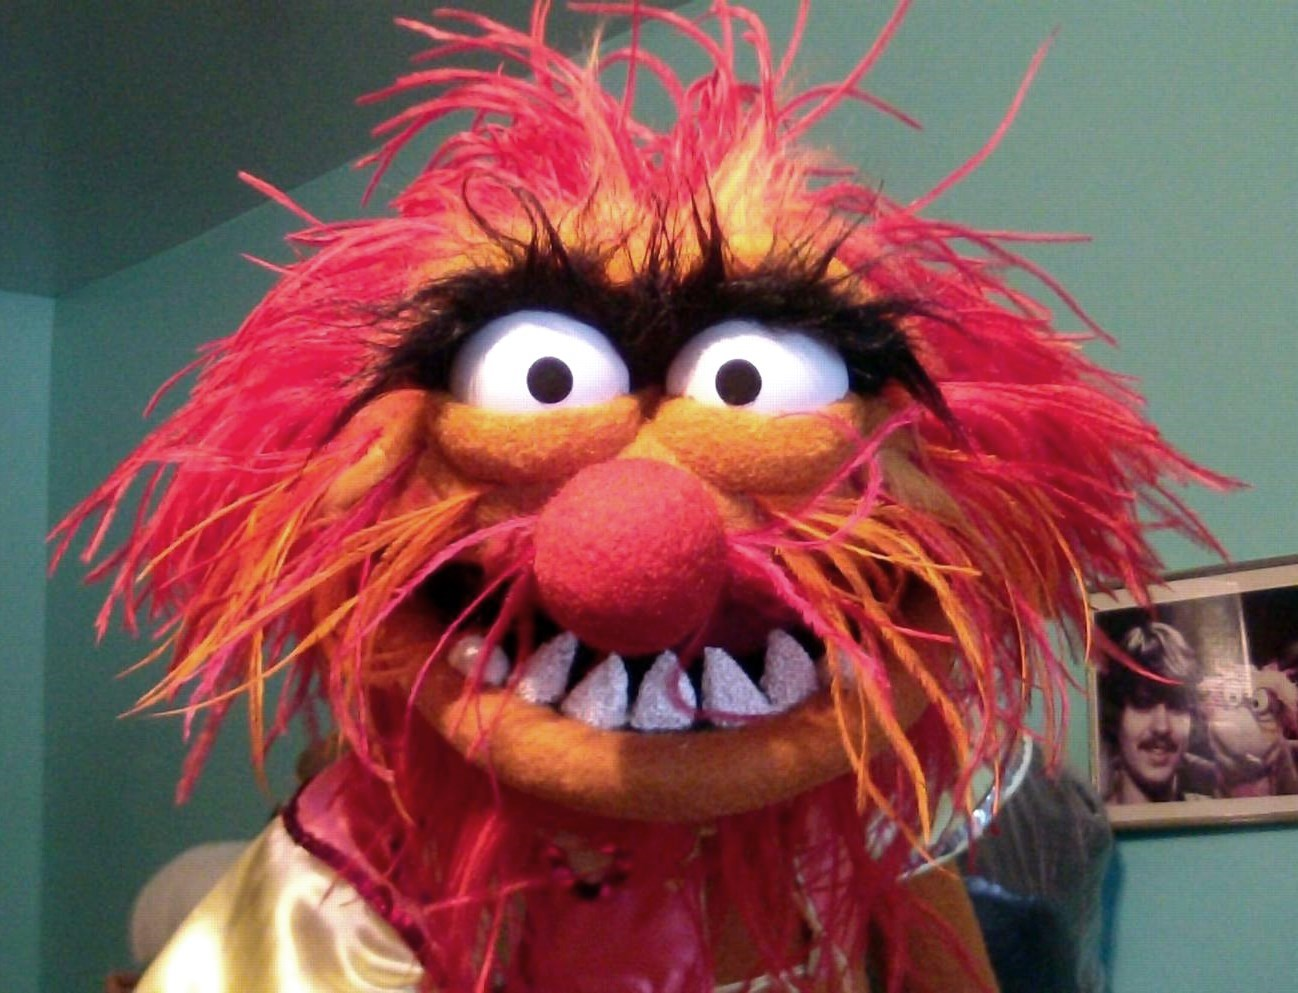 Angus puppets master replicas - Animal muppet images ...